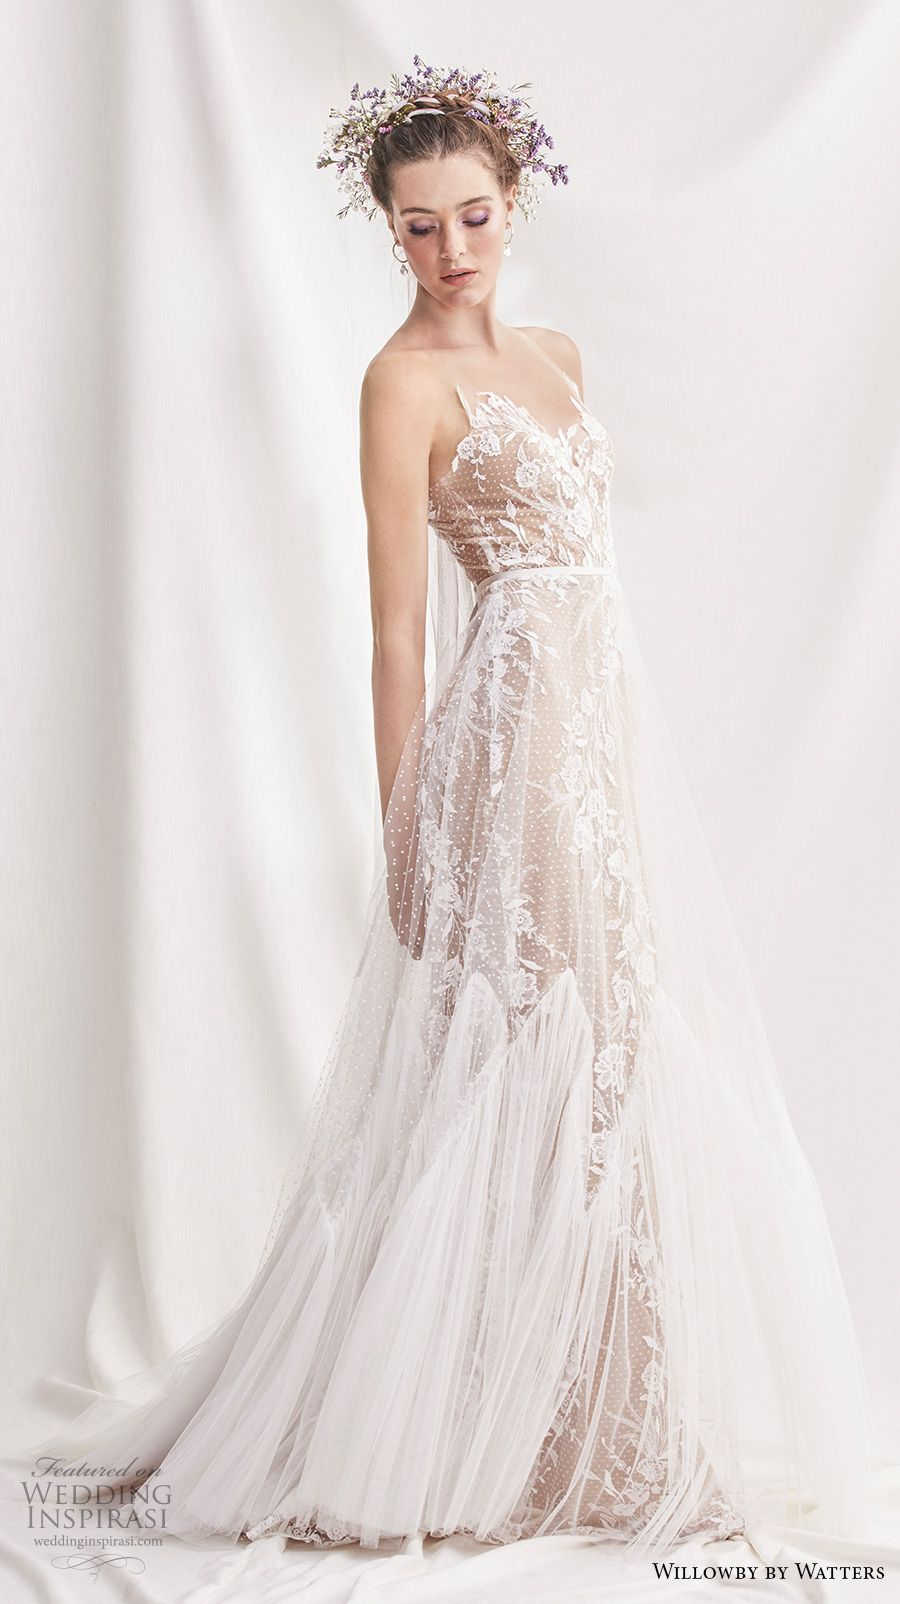 Willowby By Watters Spring 2019 Bridal Sleeveless Sheer Strap Sweetheart Neckline Full Embellishment Romantic A Line Wedding Dress Button Back Sweep: Spring Wedding Dresses Cinderella At Reisefeber.org